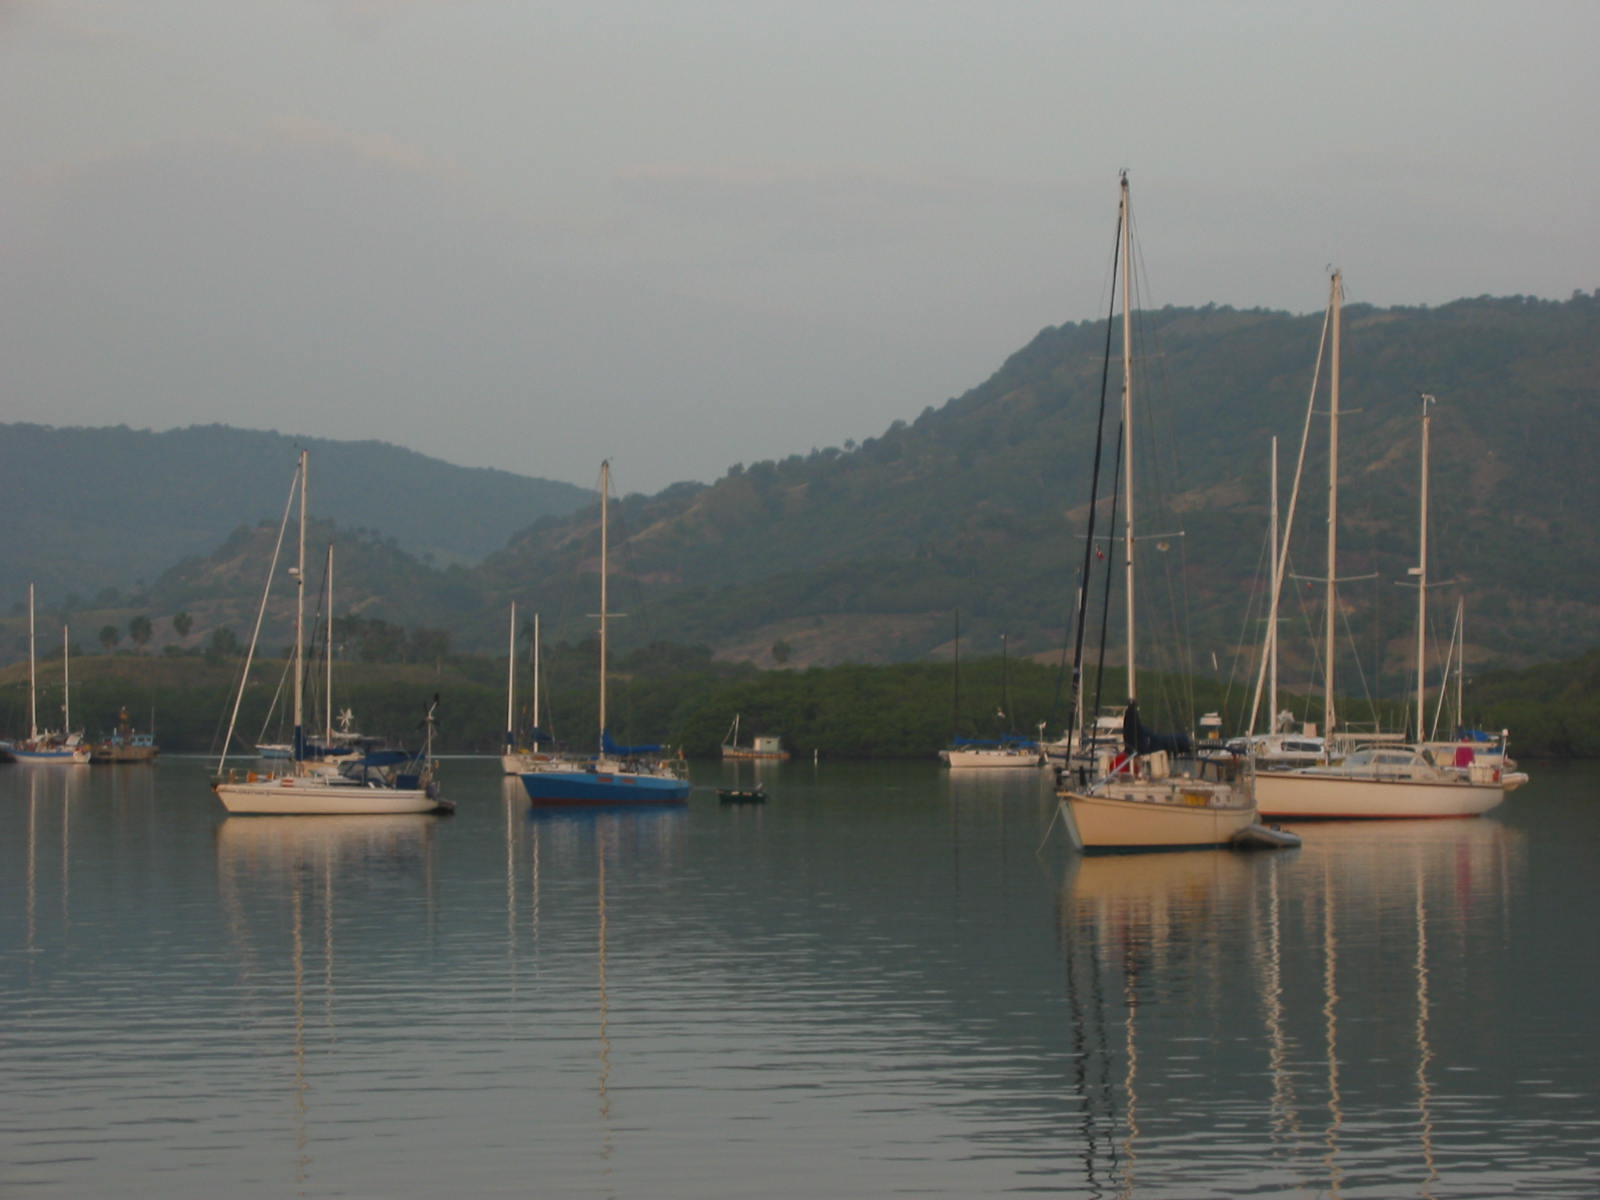 Hazy, hot morning in the anchorage at Luperón, Dominican Republic